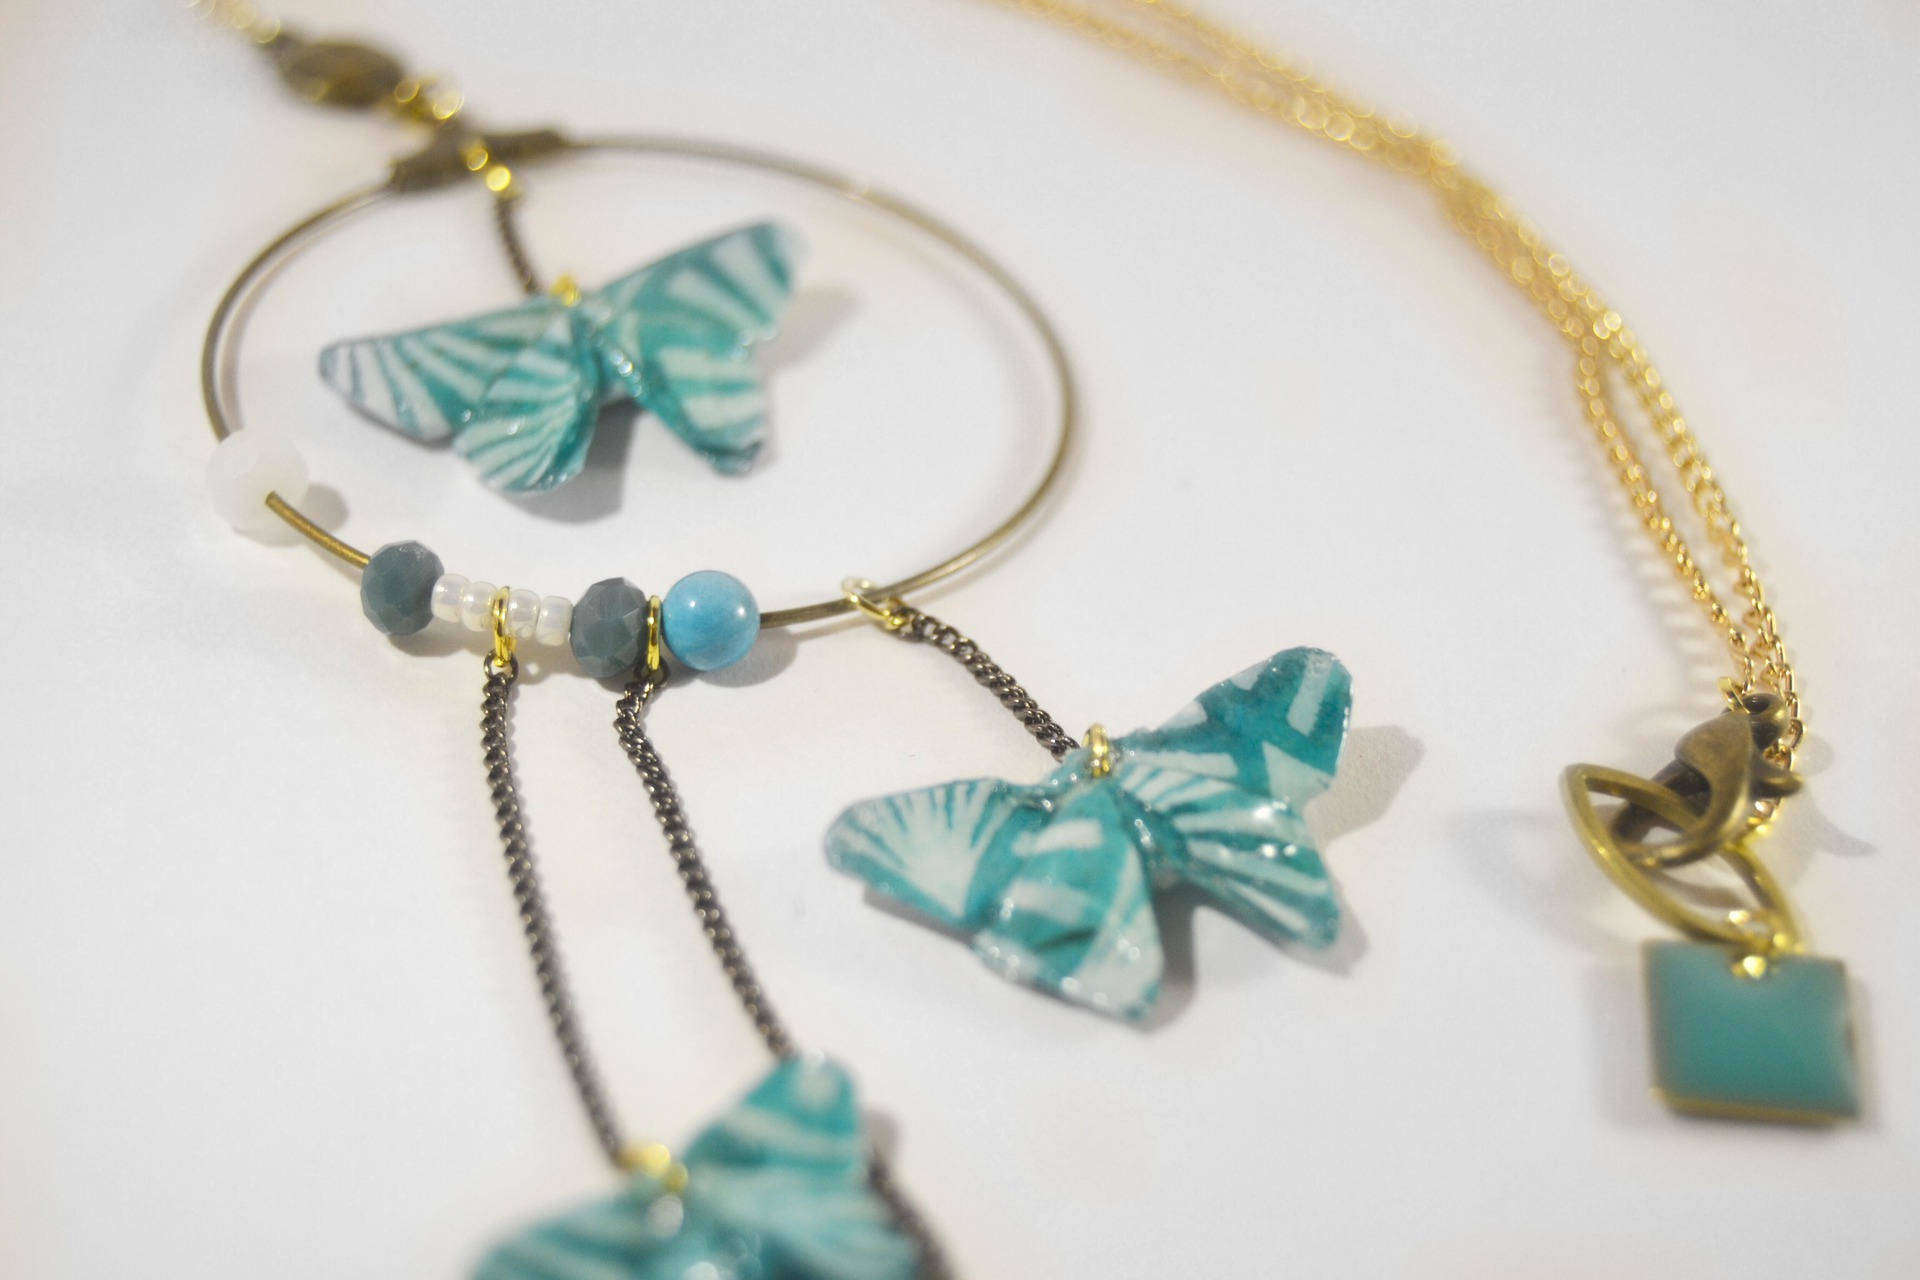 Collier Origami papillons d'Okinawa 沖縄. Plaqué or